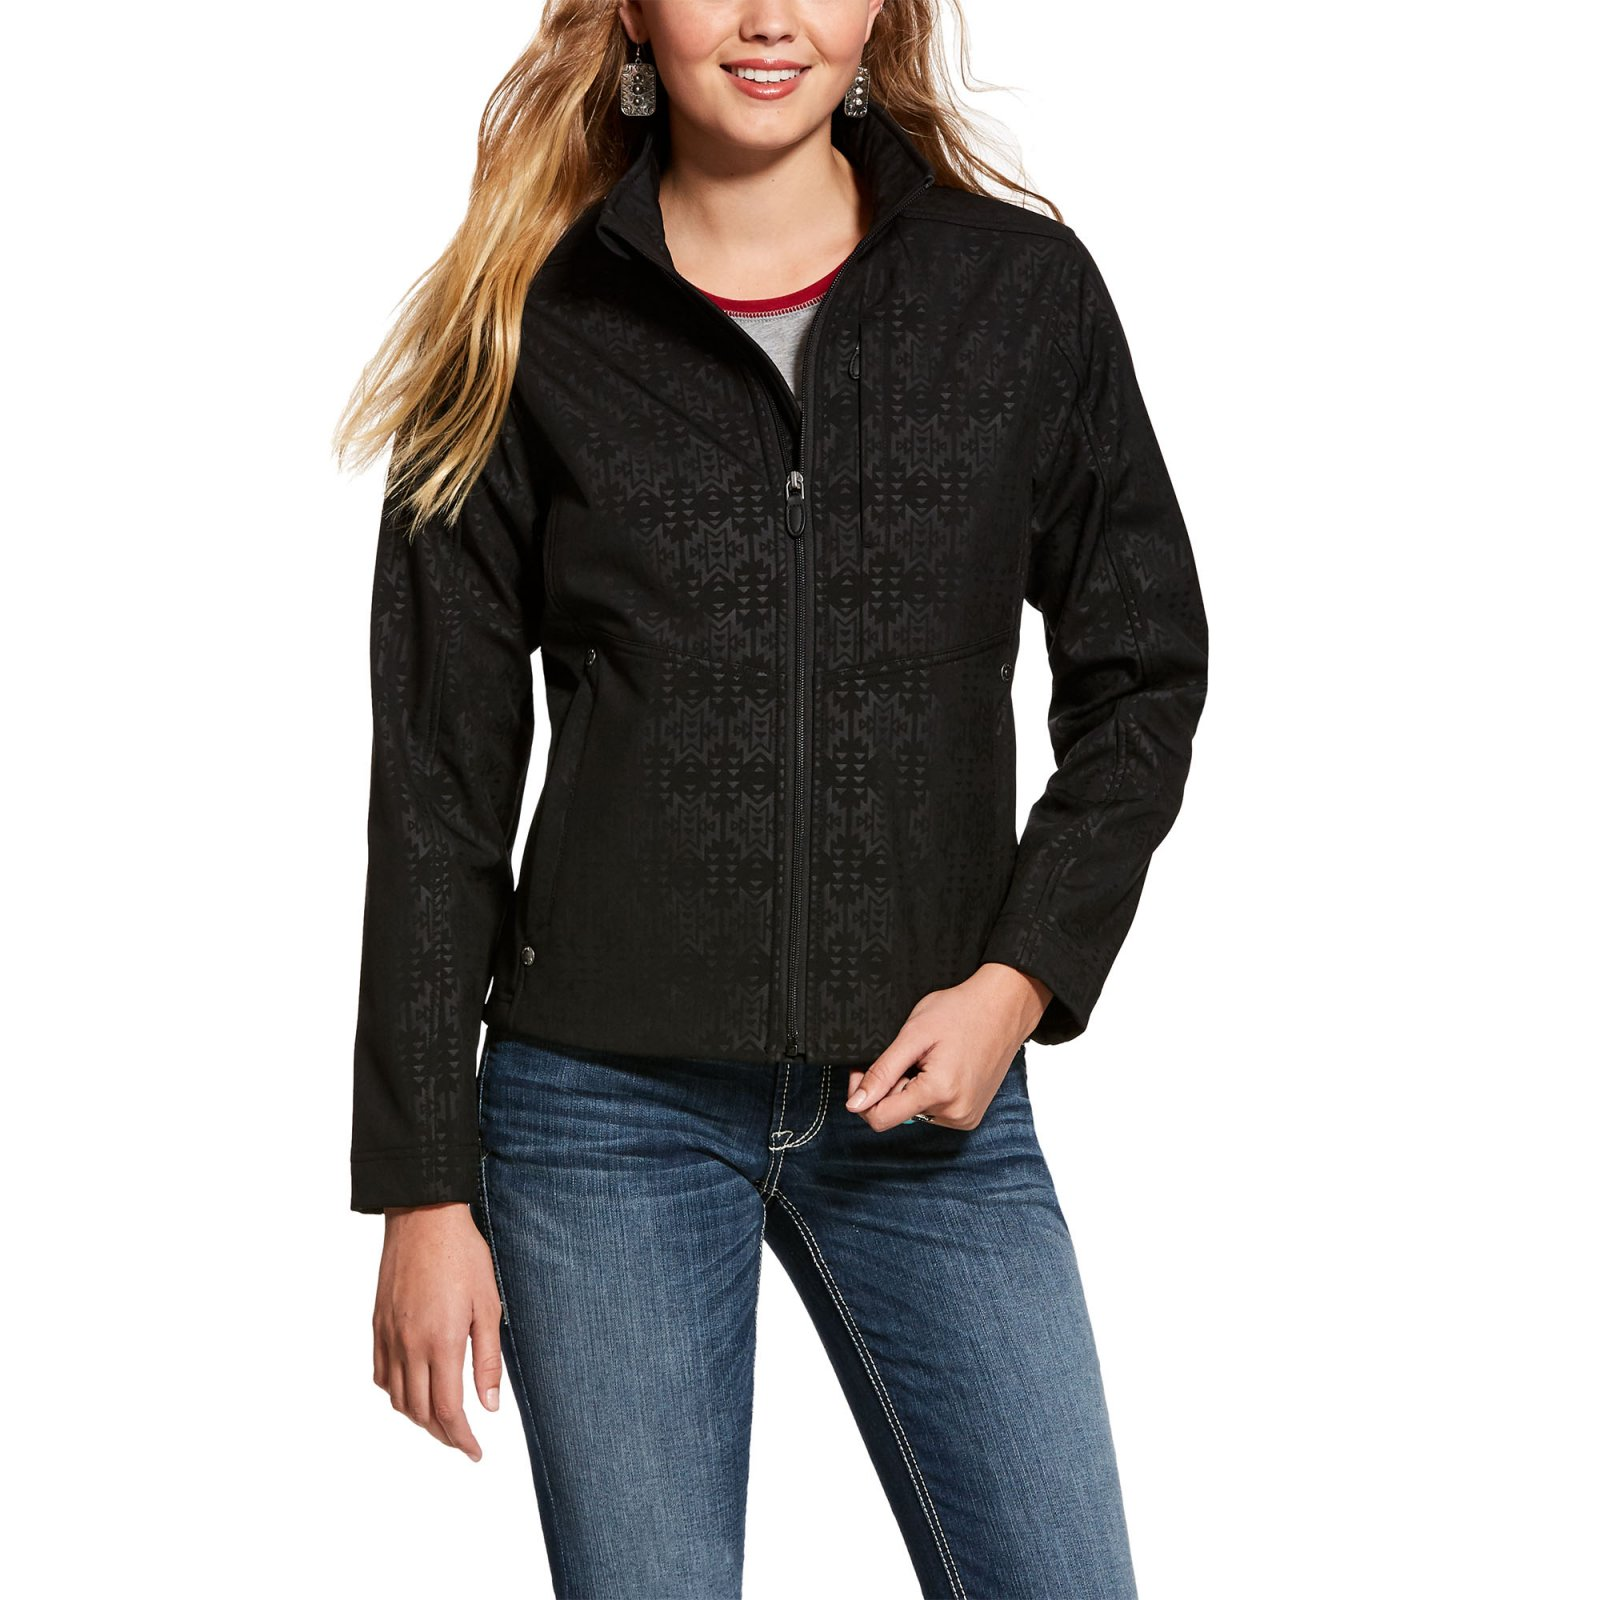 R.E.A.L. Aztec Pattern Conceal and Carry Jacket from Ariat